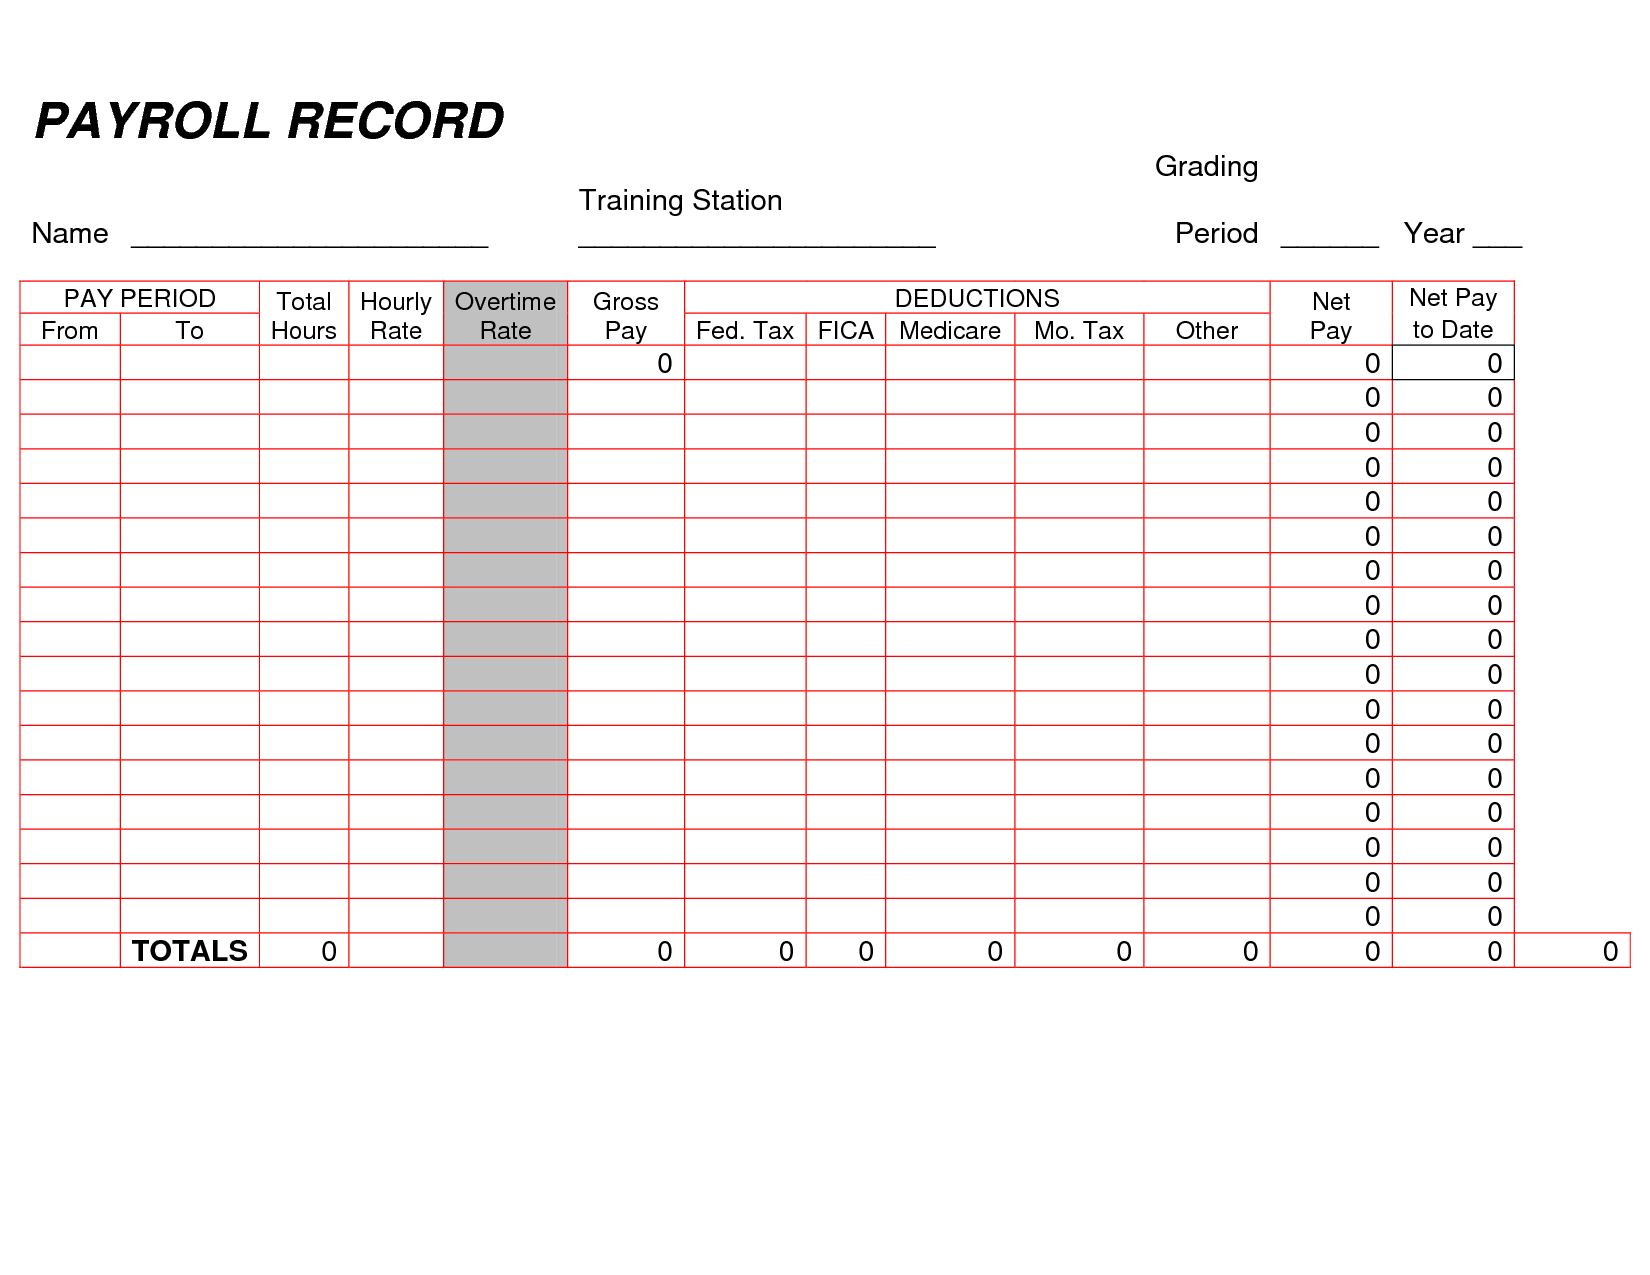 Printable Payroll Ledger  Blank Payroll Record  Pdf  My Style